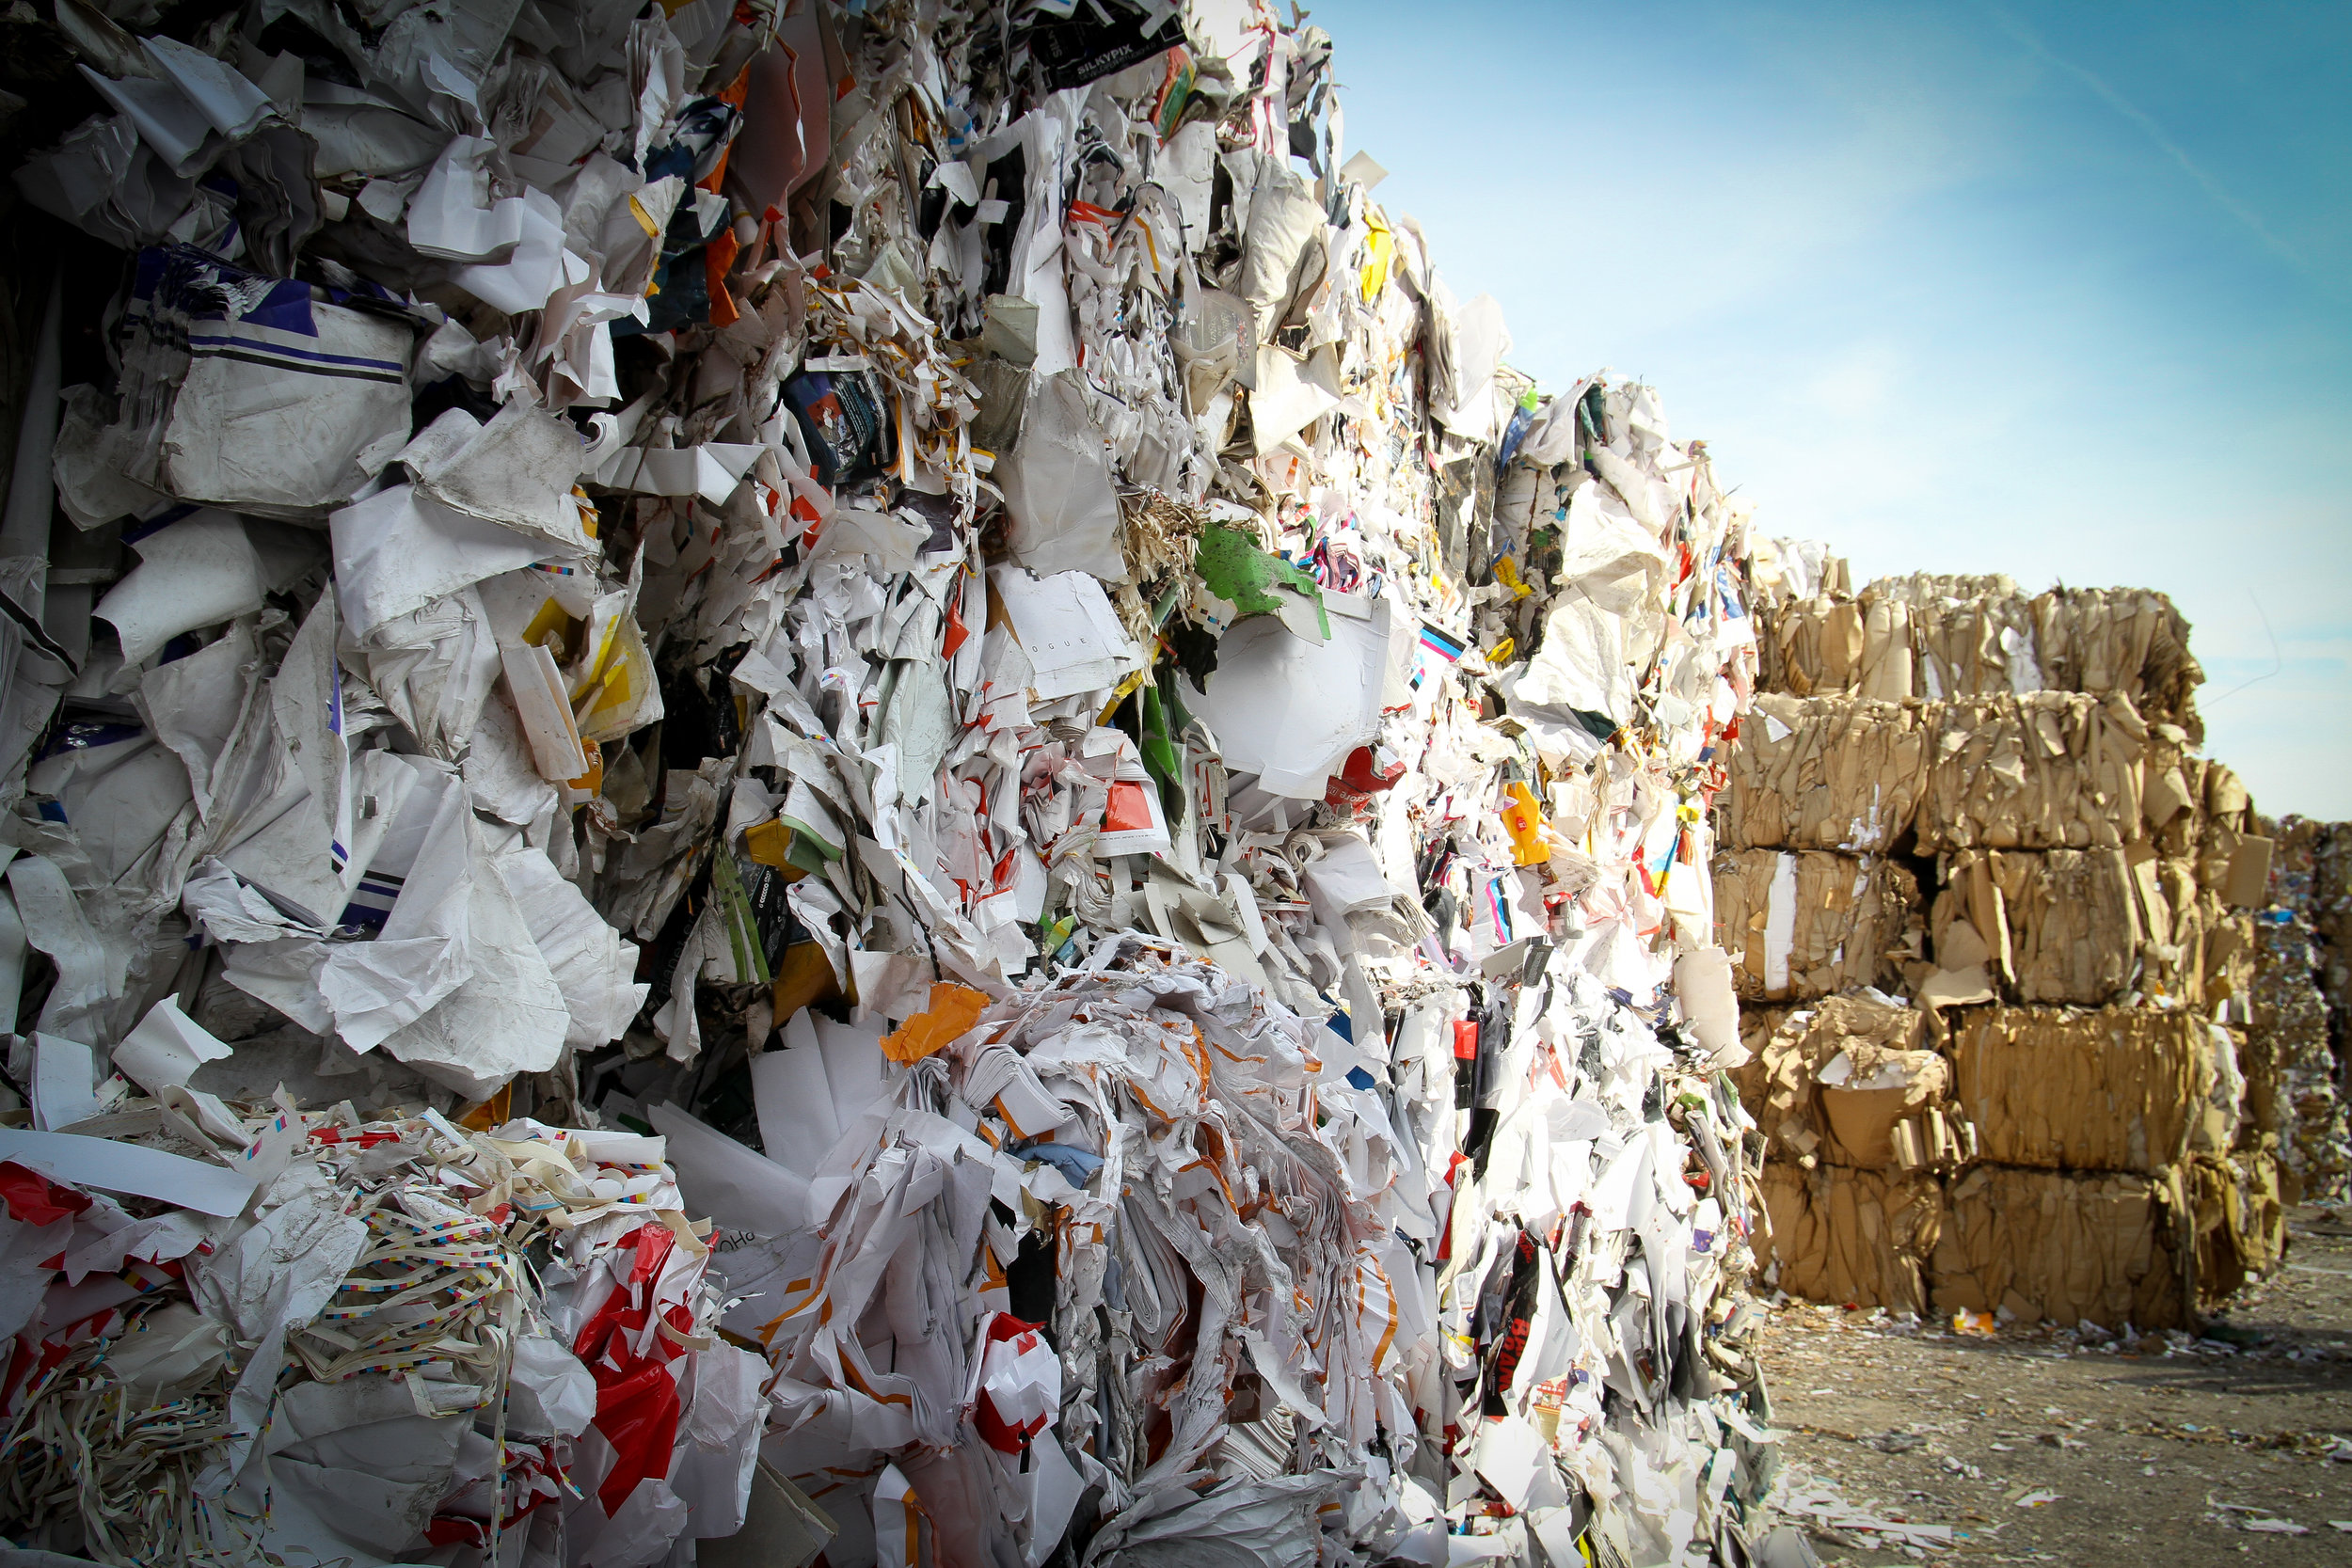 No Longer the World's Waste Basket. - After China stopped importing the world's waste, global recycling has stalled. Recycling companies in the United States scramble.